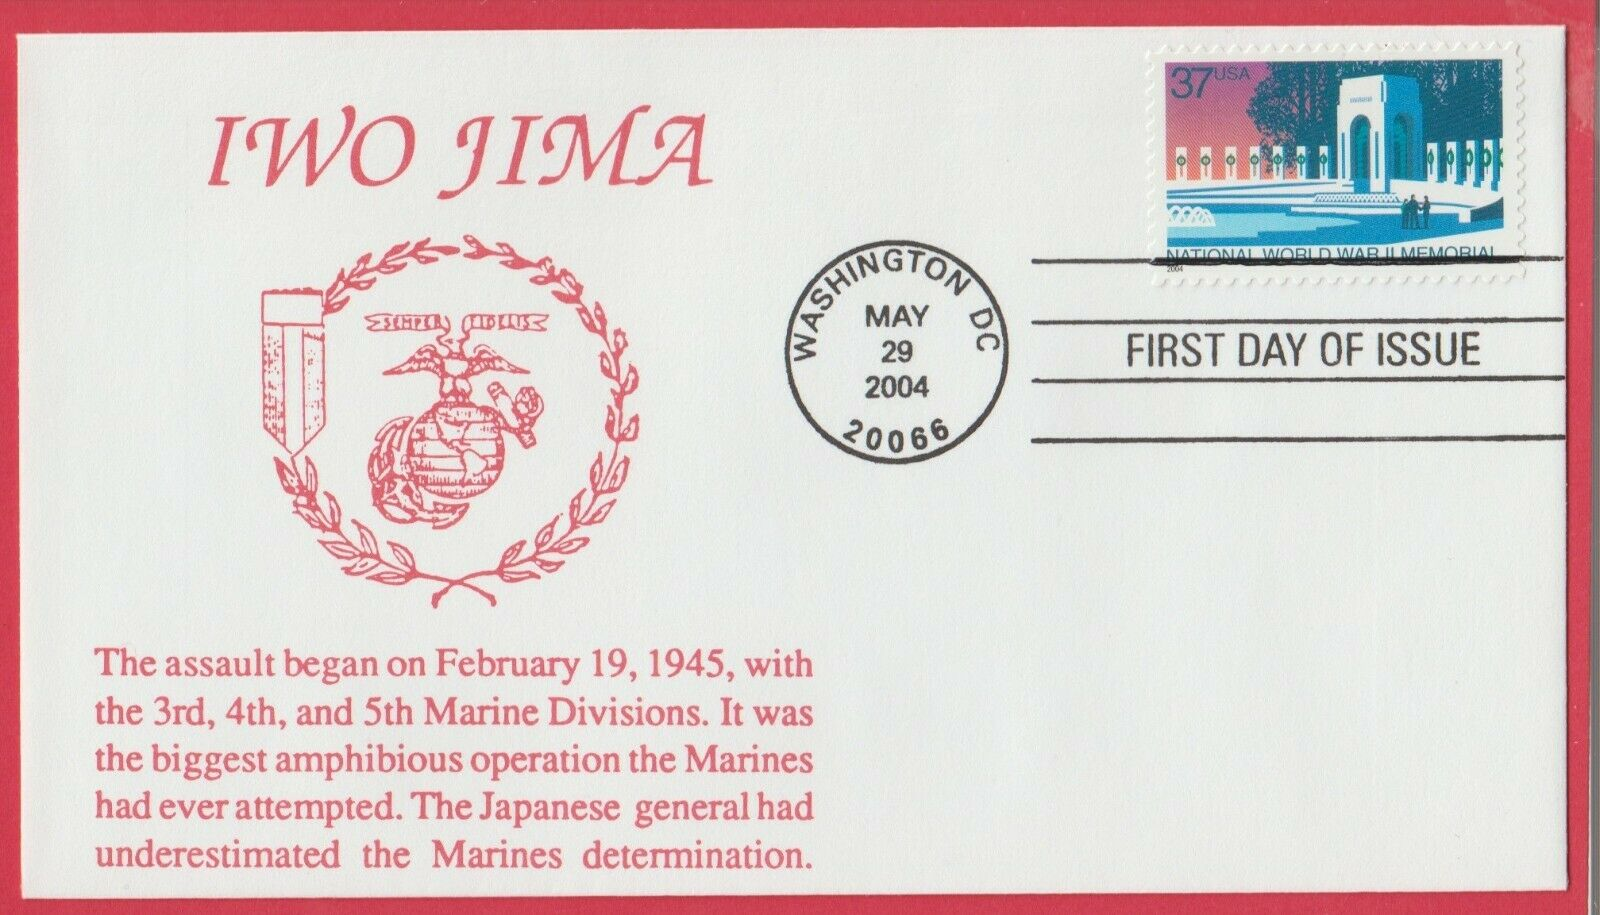 FDC National WW-2 Memorial , Cachet Is For 3,4,5, Mar.Div. Japnes Underestimated - $5.50